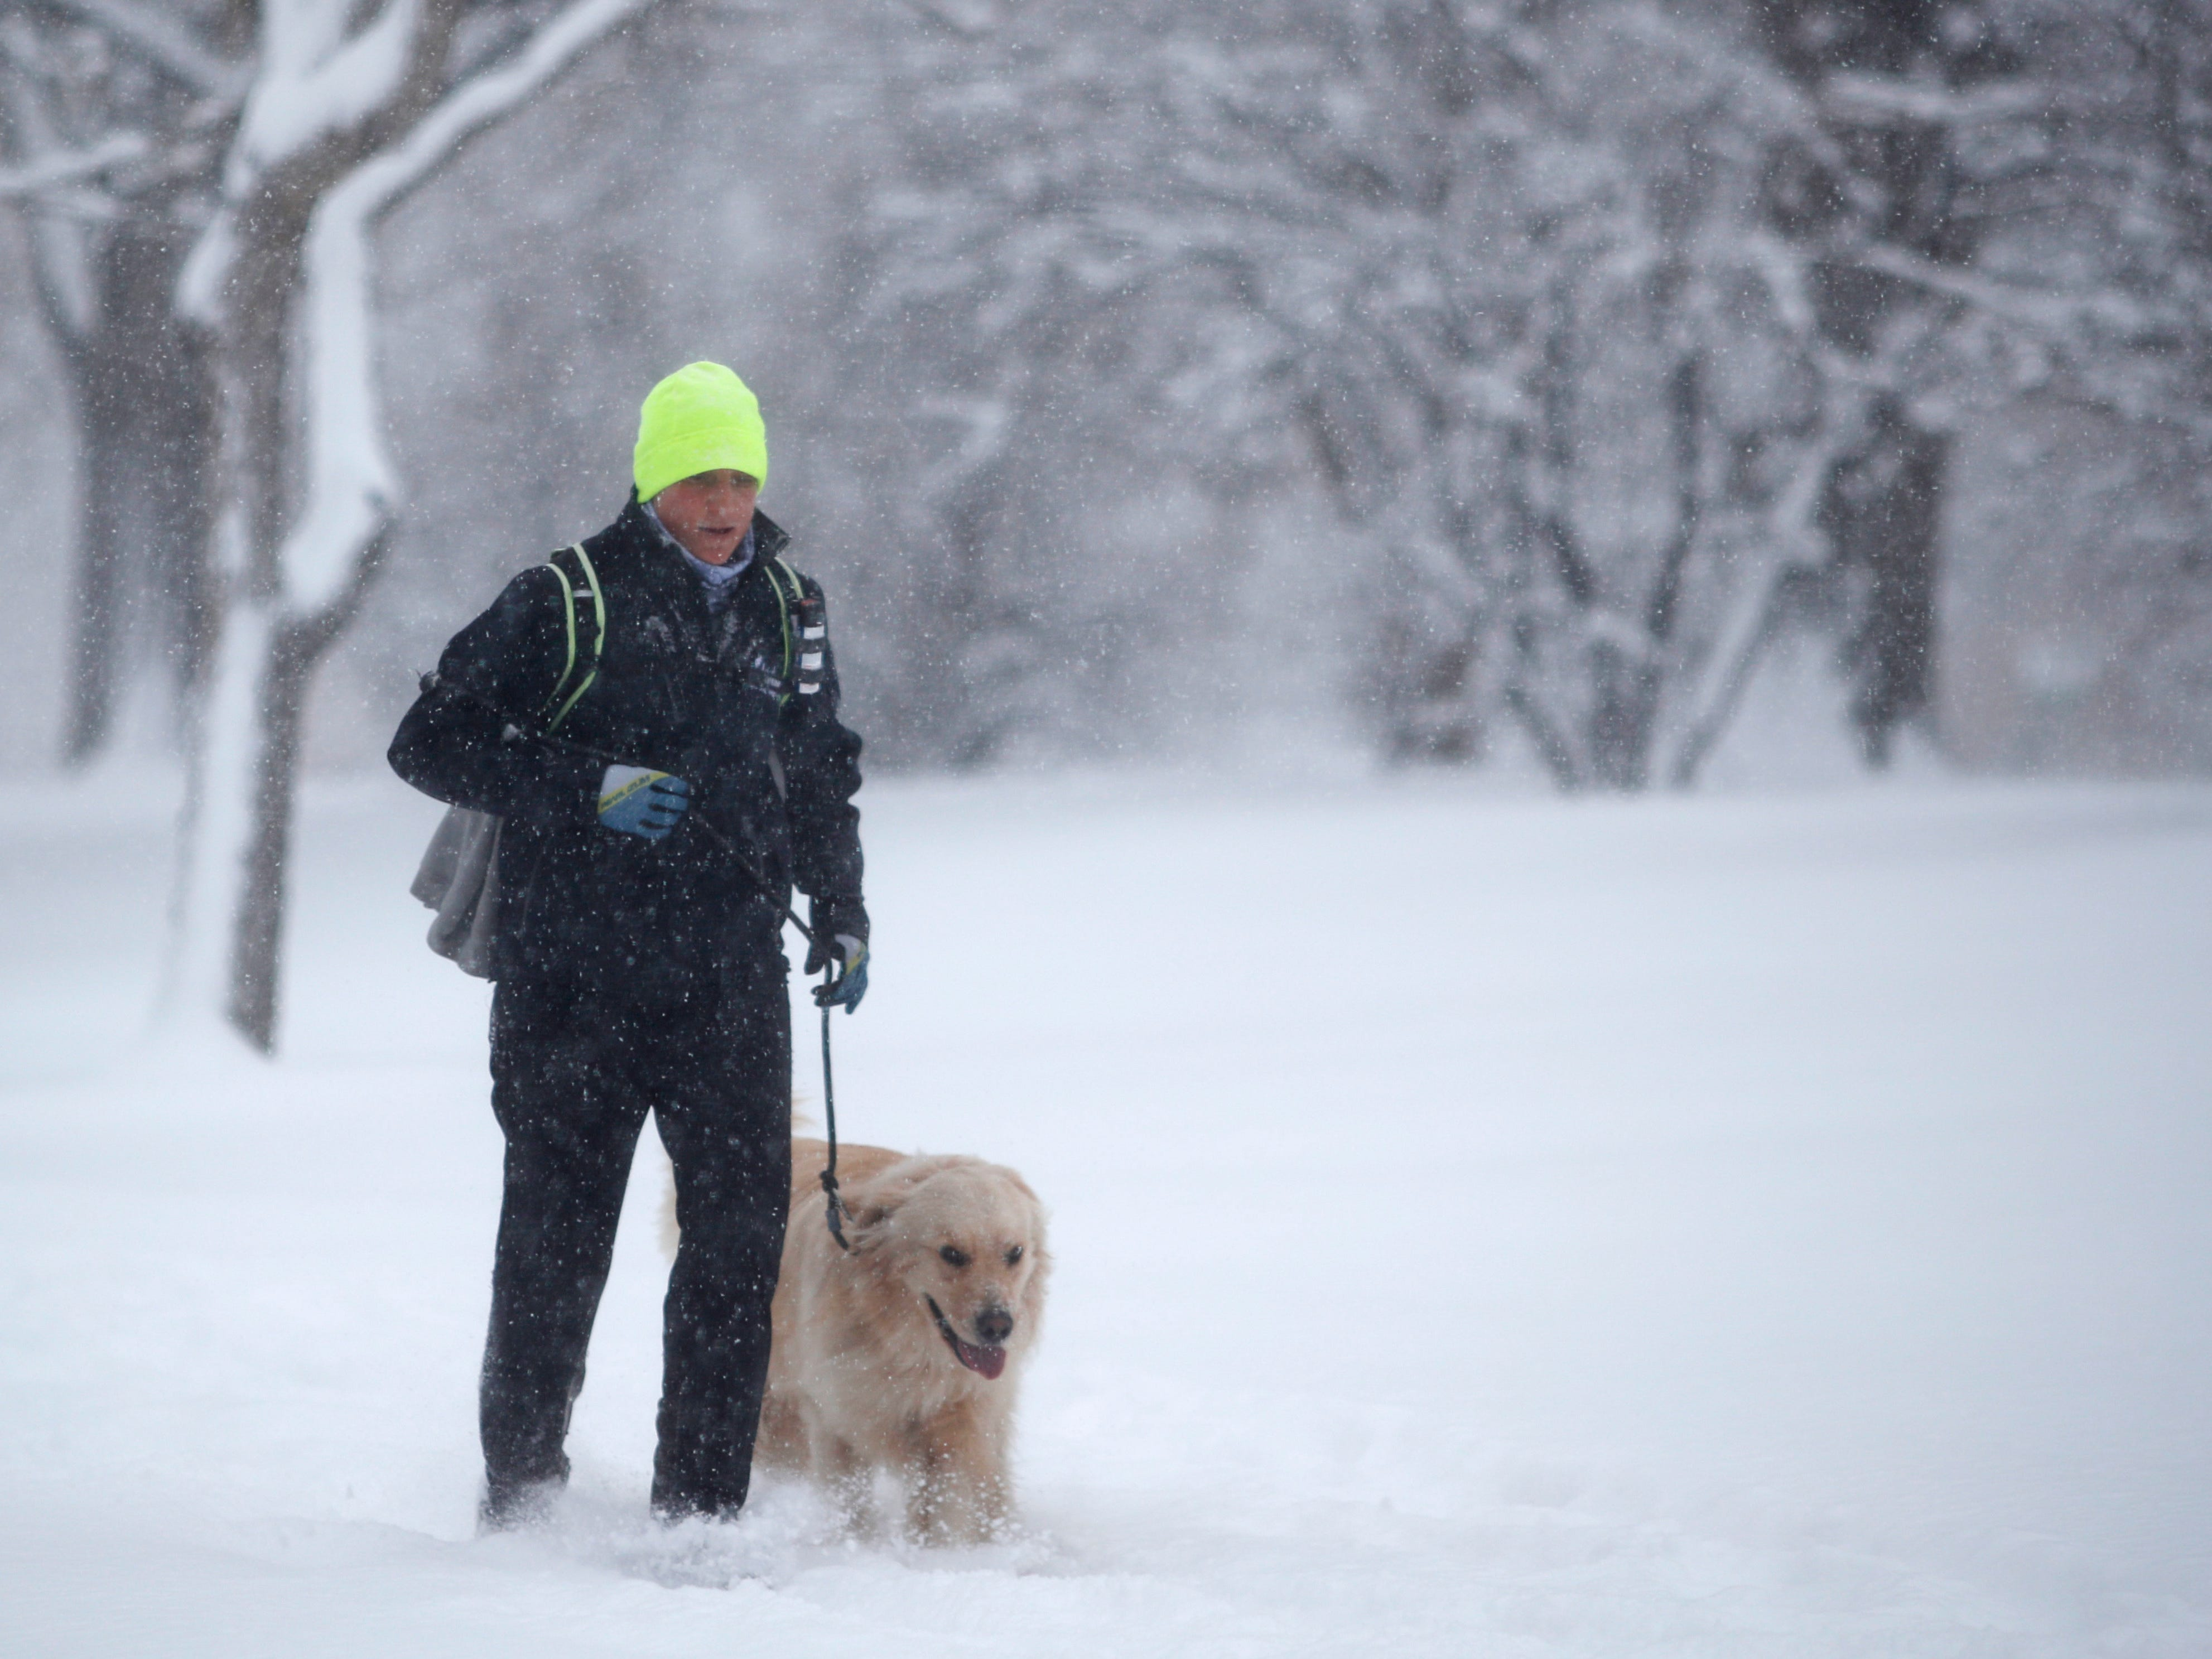 A jogger and his dog battle high winds and snow as a winter storm rolls through on Jan. 28, 2019, in Denver.